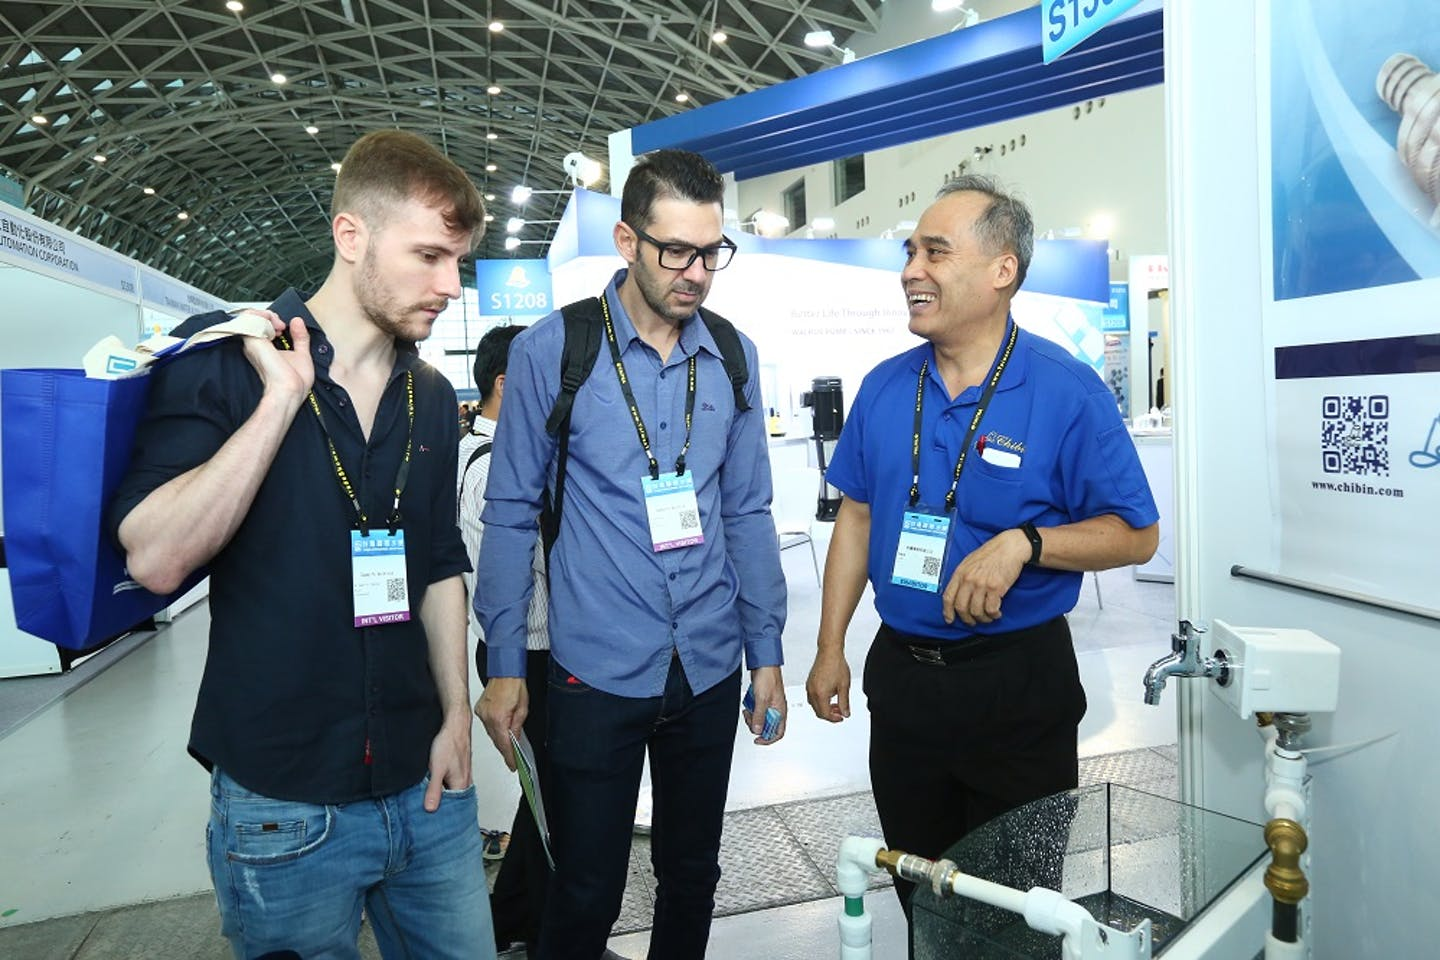 First Taiwan International Water Week serves as the platform for exhibition and forum